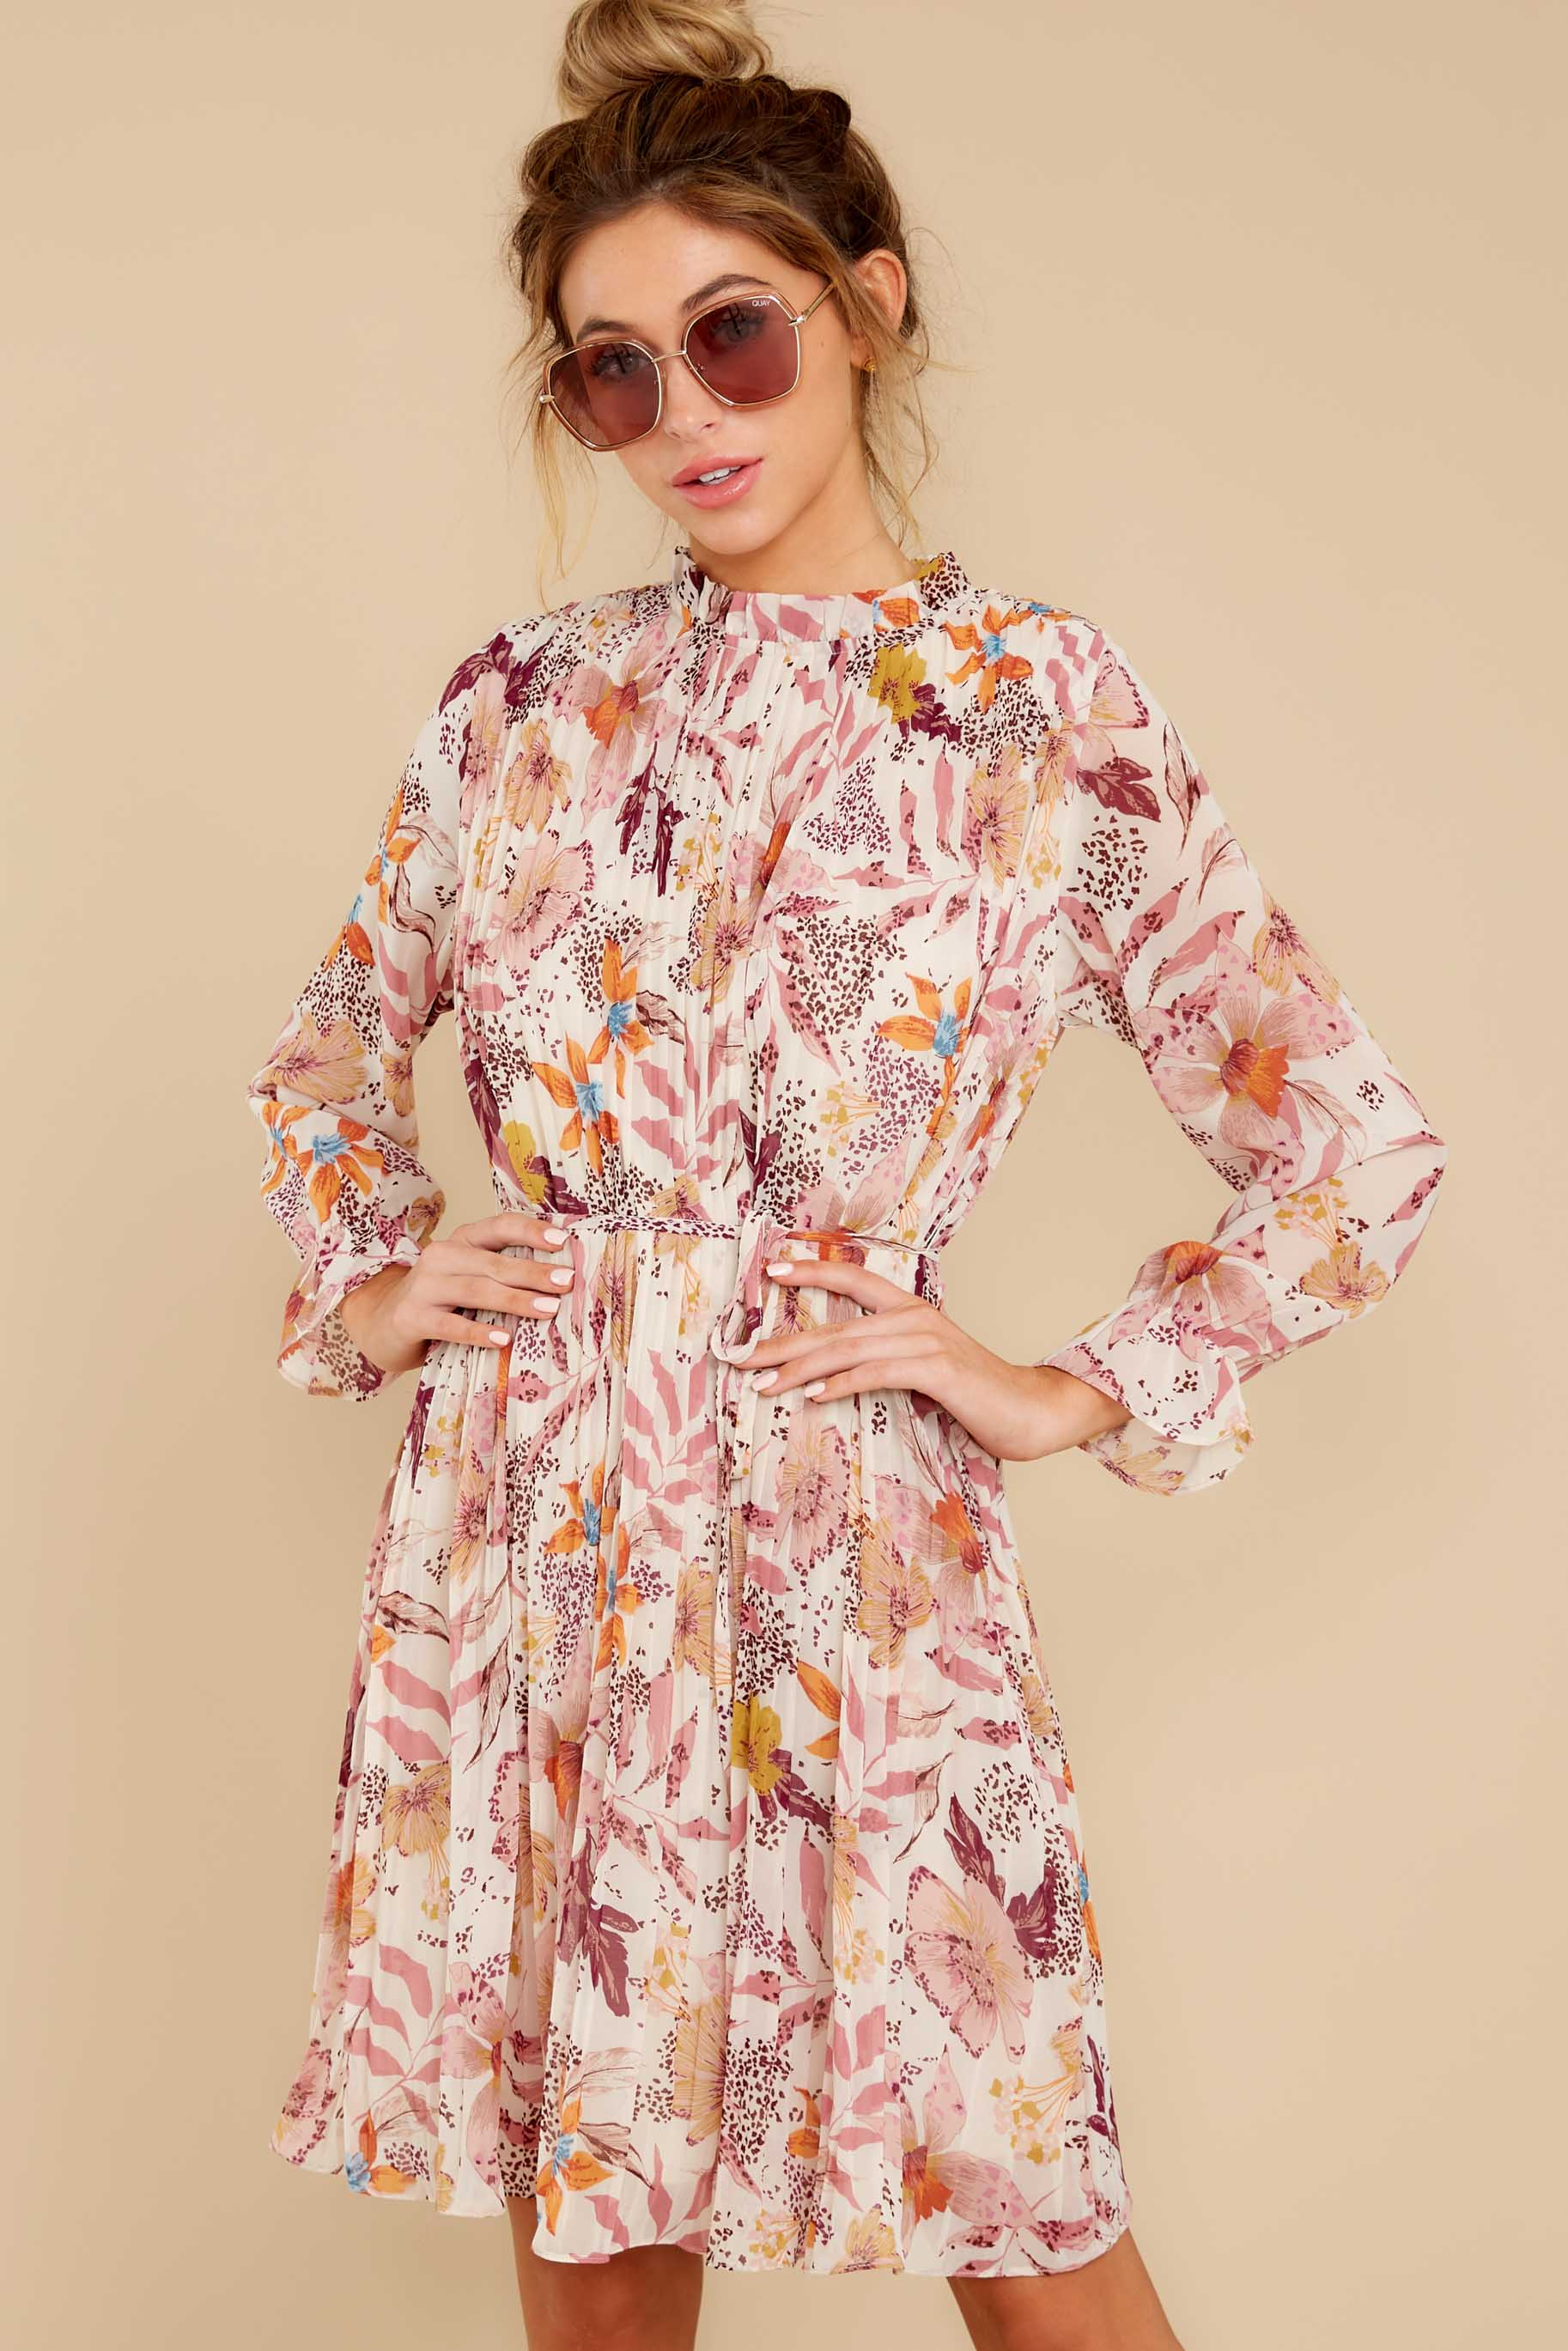 4 Straight For Your Heart Ivory Floral Print Dress at reddressboutique.com